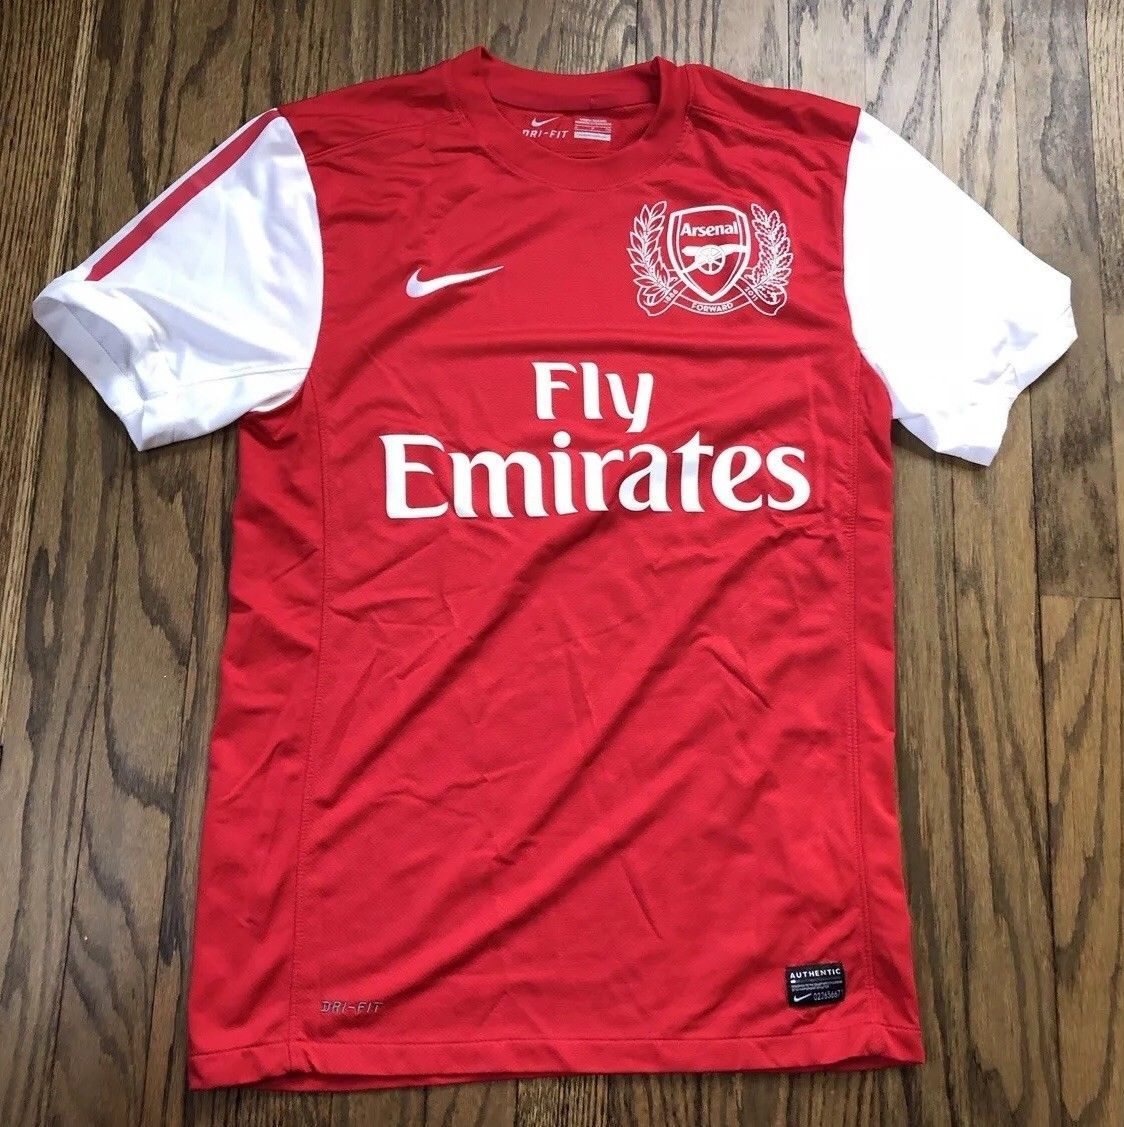 53155d824f2 S l1600. S l1600. Previous. NIke Dri Fit Arsenal Mens Short Sleeve Soccer  Futbol Jersey Size Small